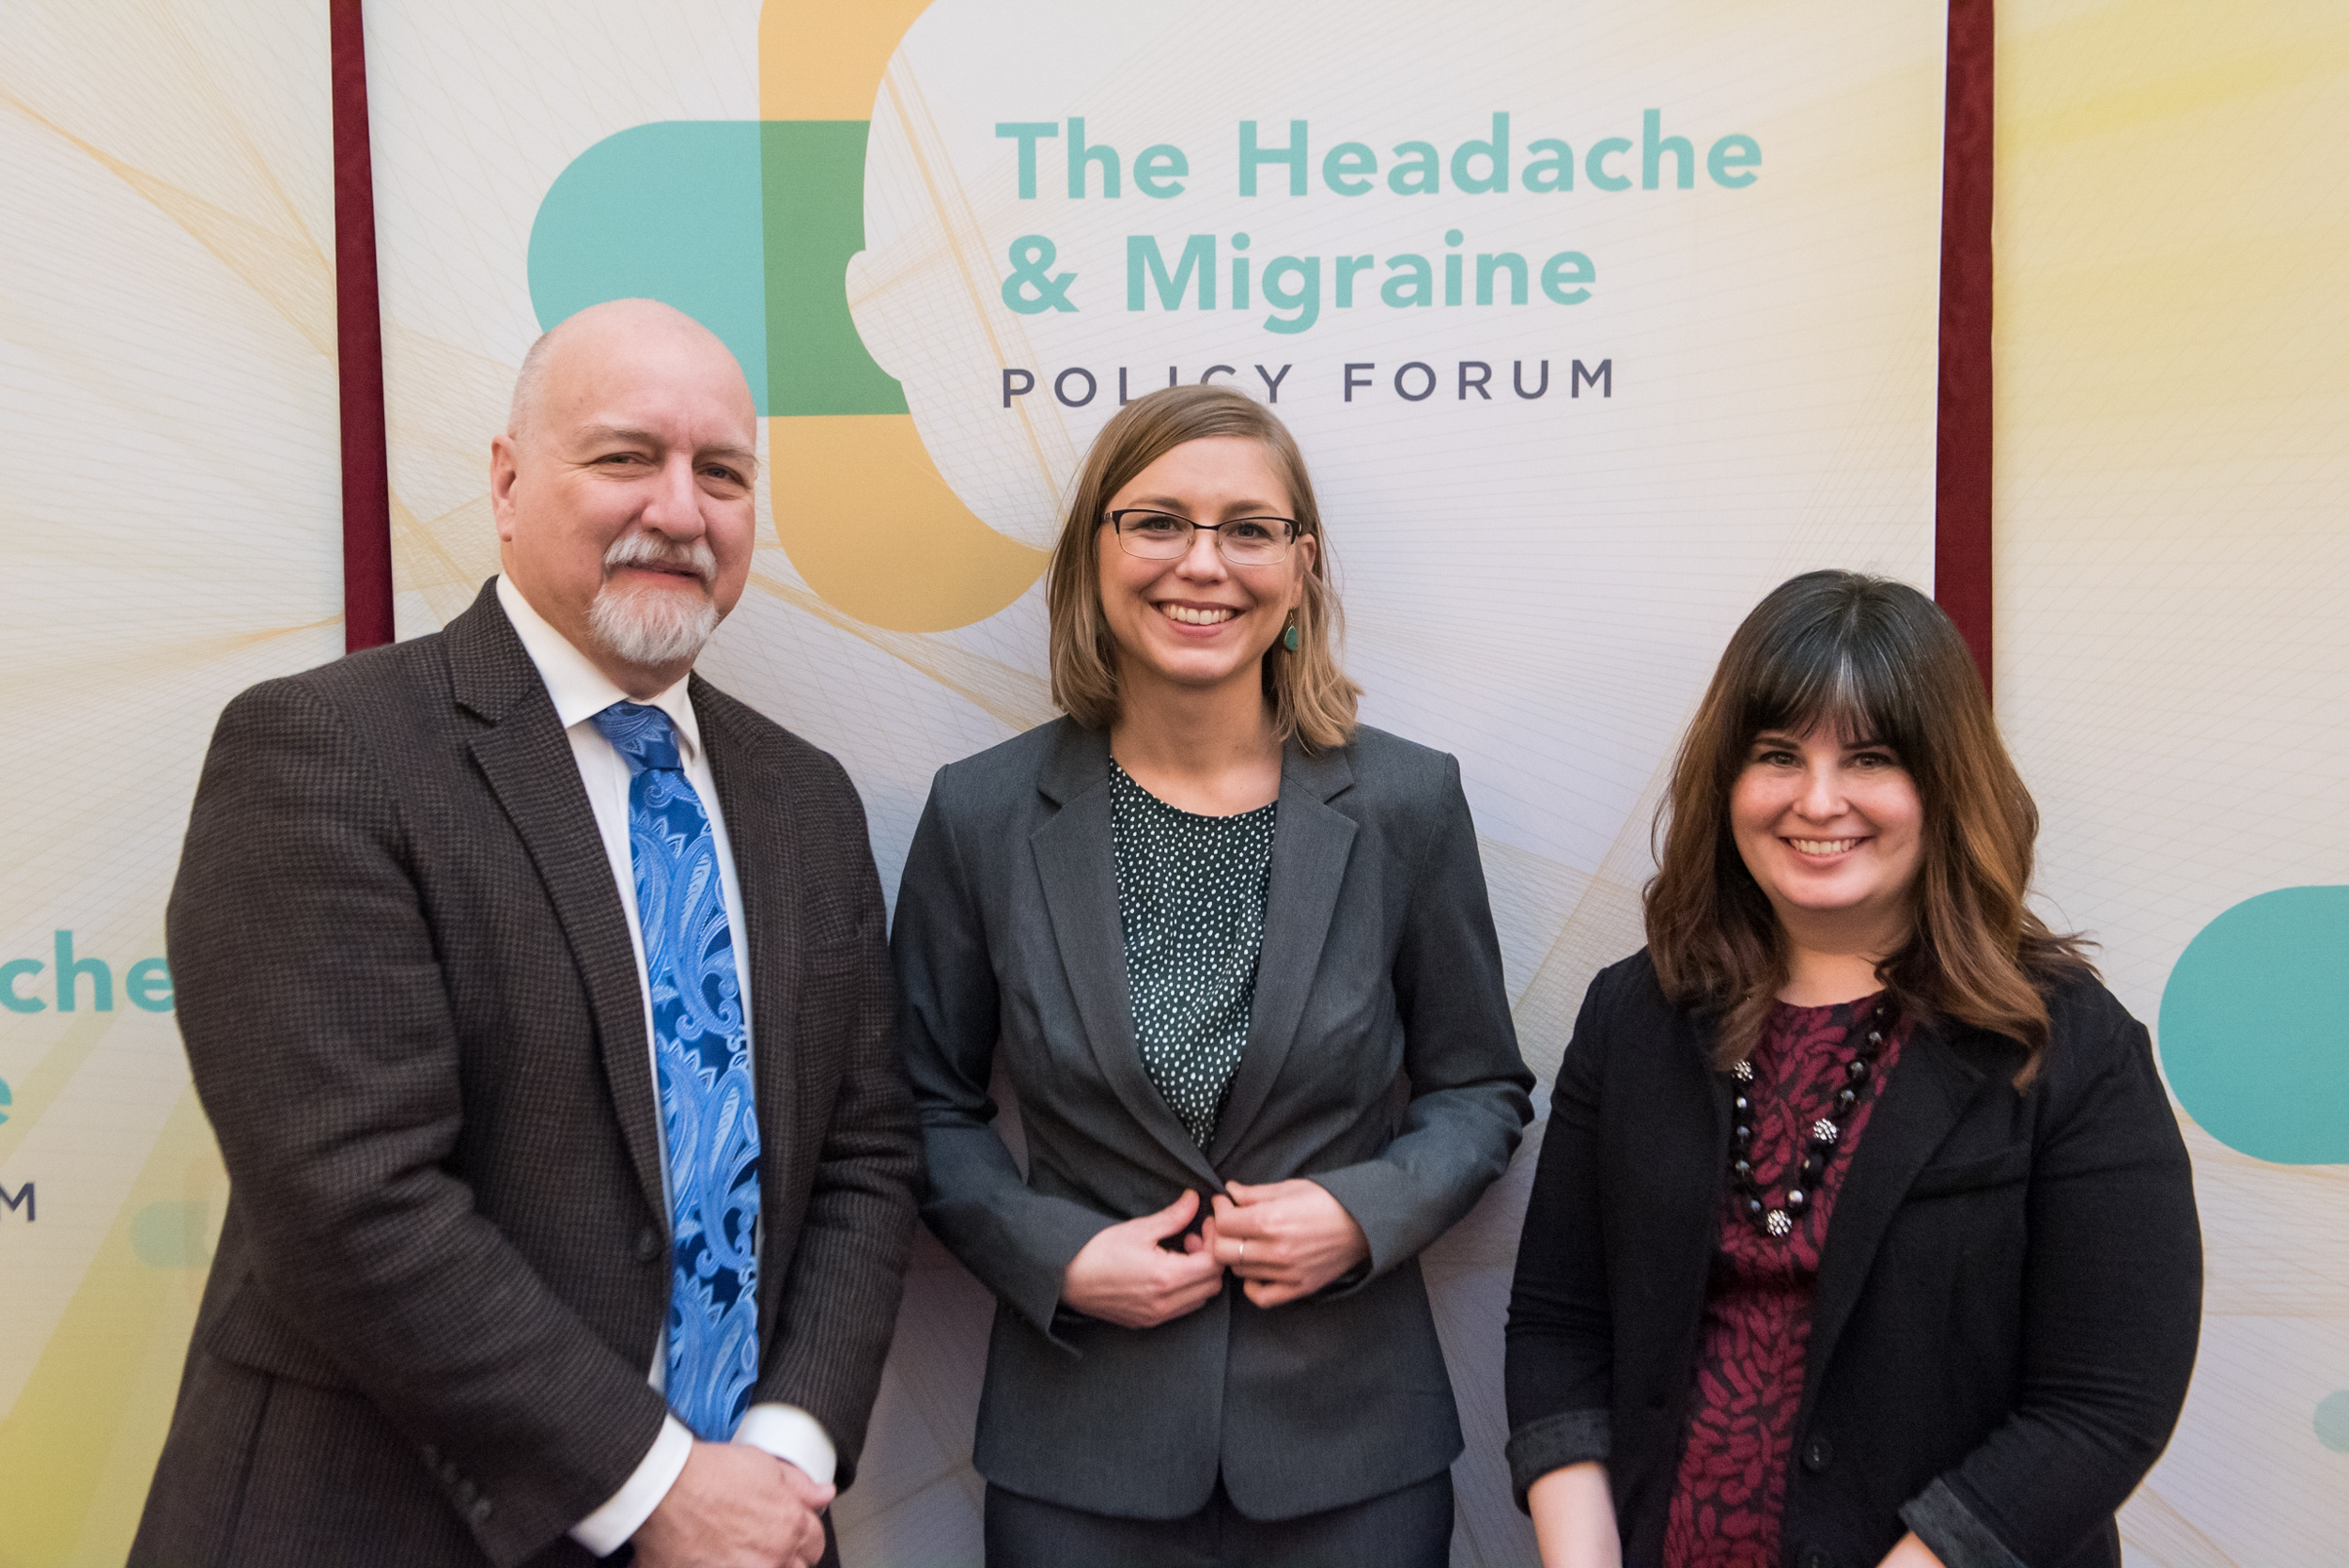 Headache and Migraine Forum Capitol Hill Panel - Jason Dixson Photography - 190212 - 081346 - 8650.jpg